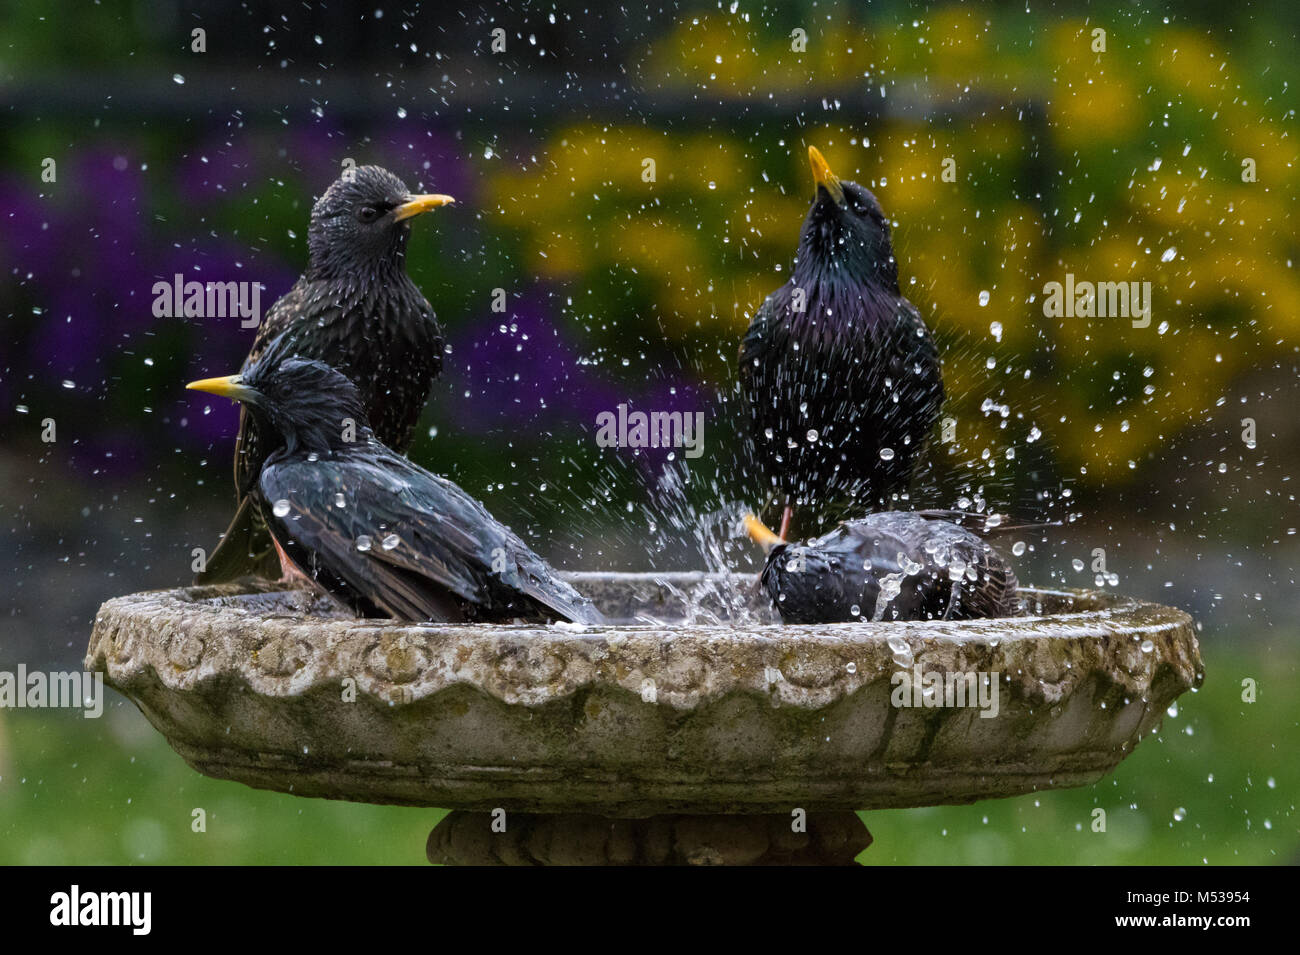 A group of starlings in a bird bath with water spray - Stock Image